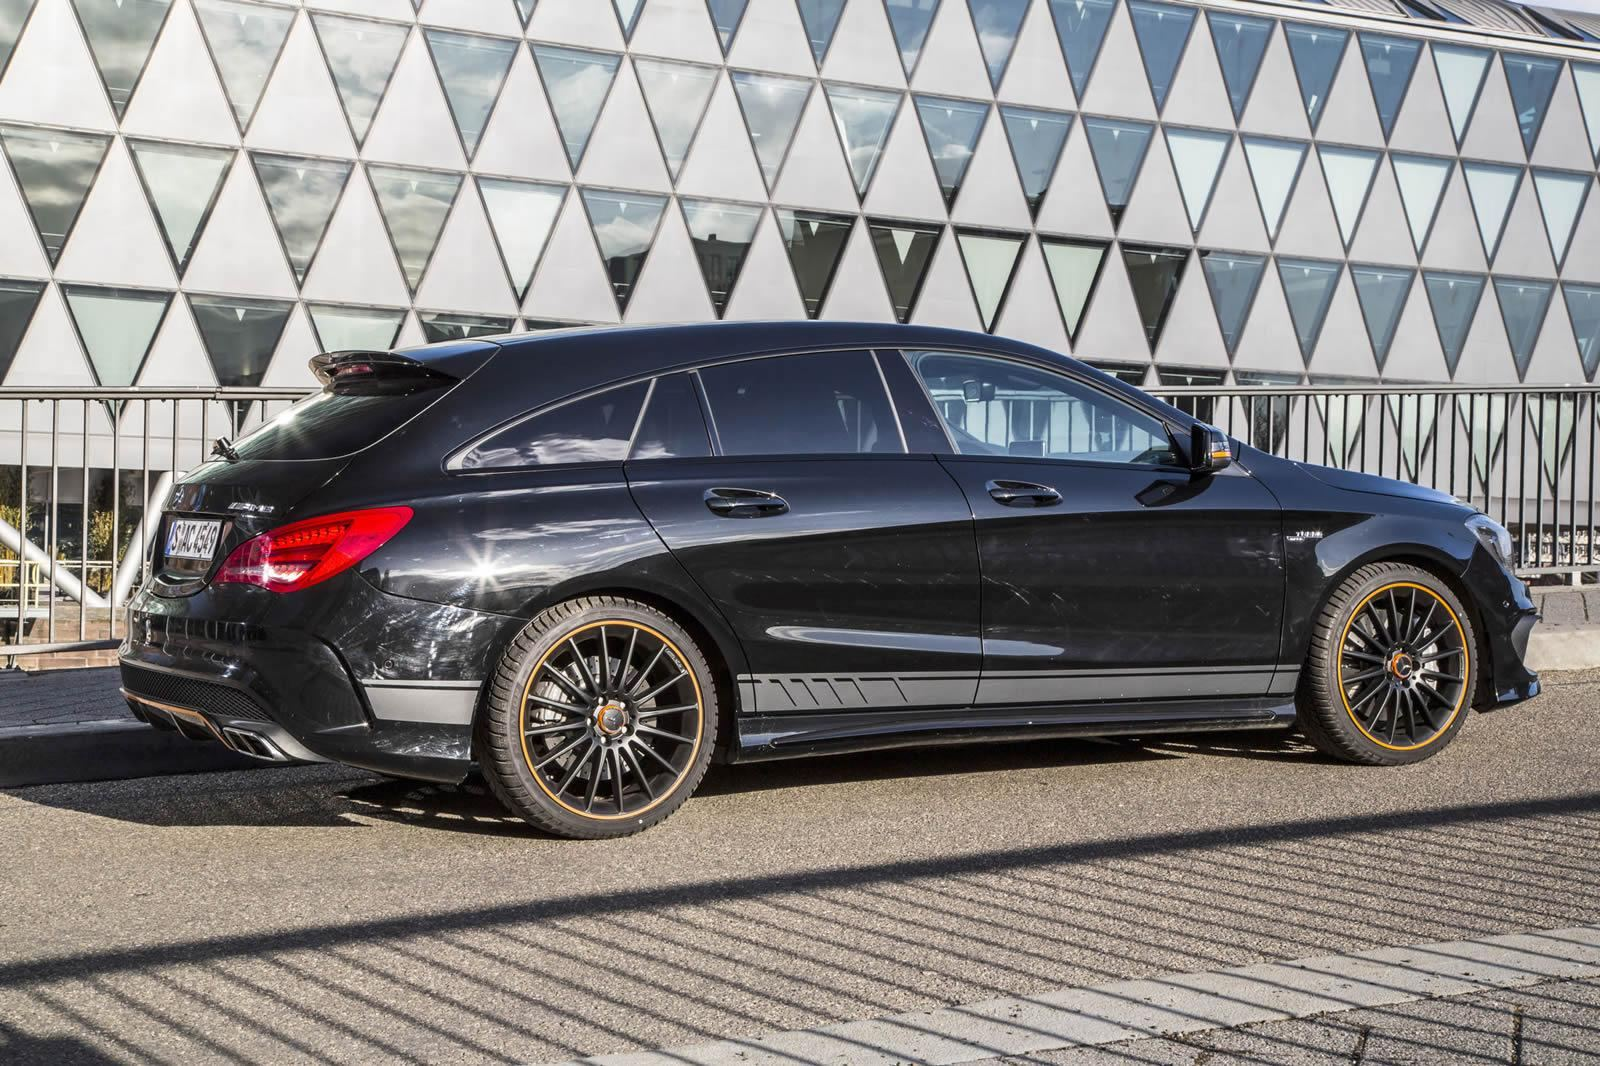 Mercedes Benz CLA 45 AMG Shooting Brake OrangeArt Edition 2015 1600x1066